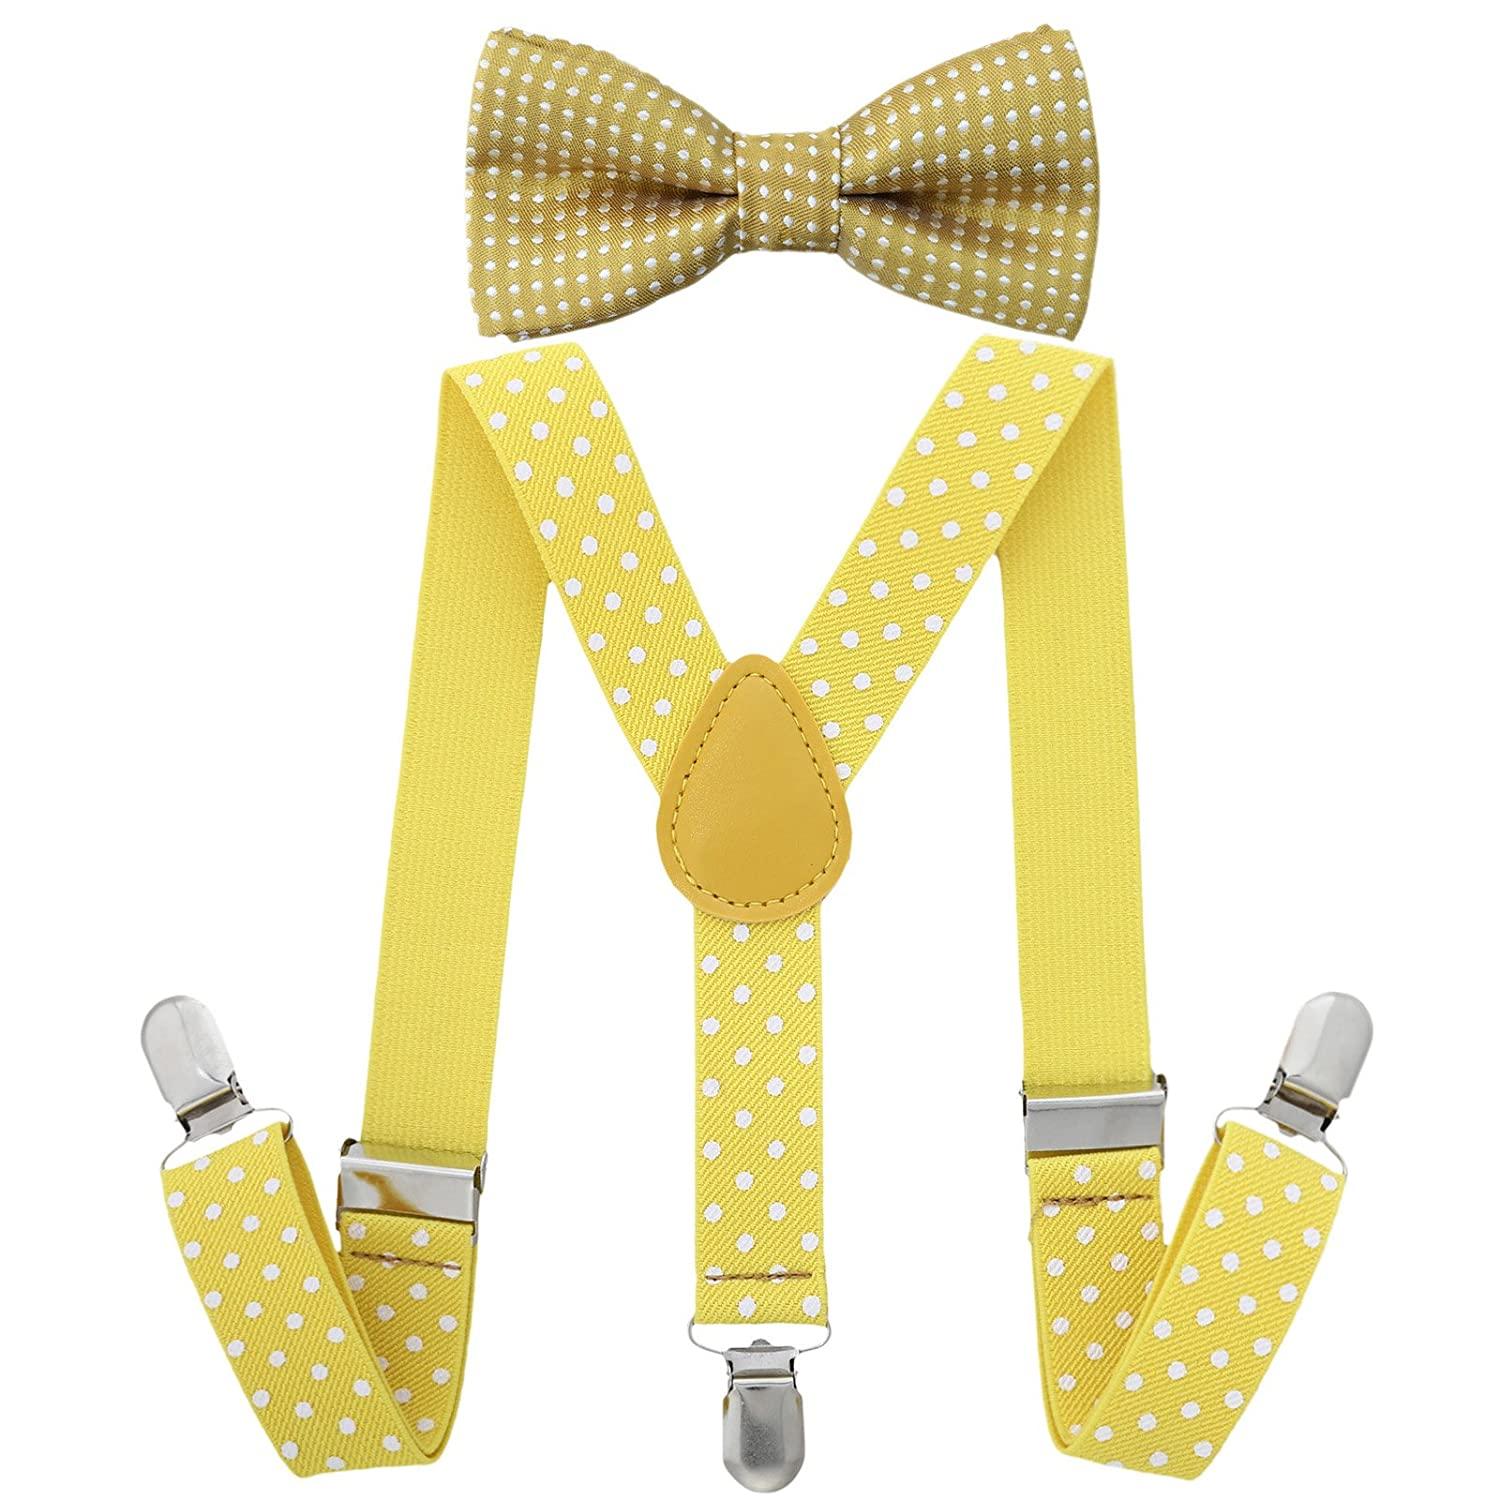 Children Kids Braces Bow tie set- Adjustable elastic Suspenders with Bowtie set for Boys & Girls by AWAYTR 0611BDXW324